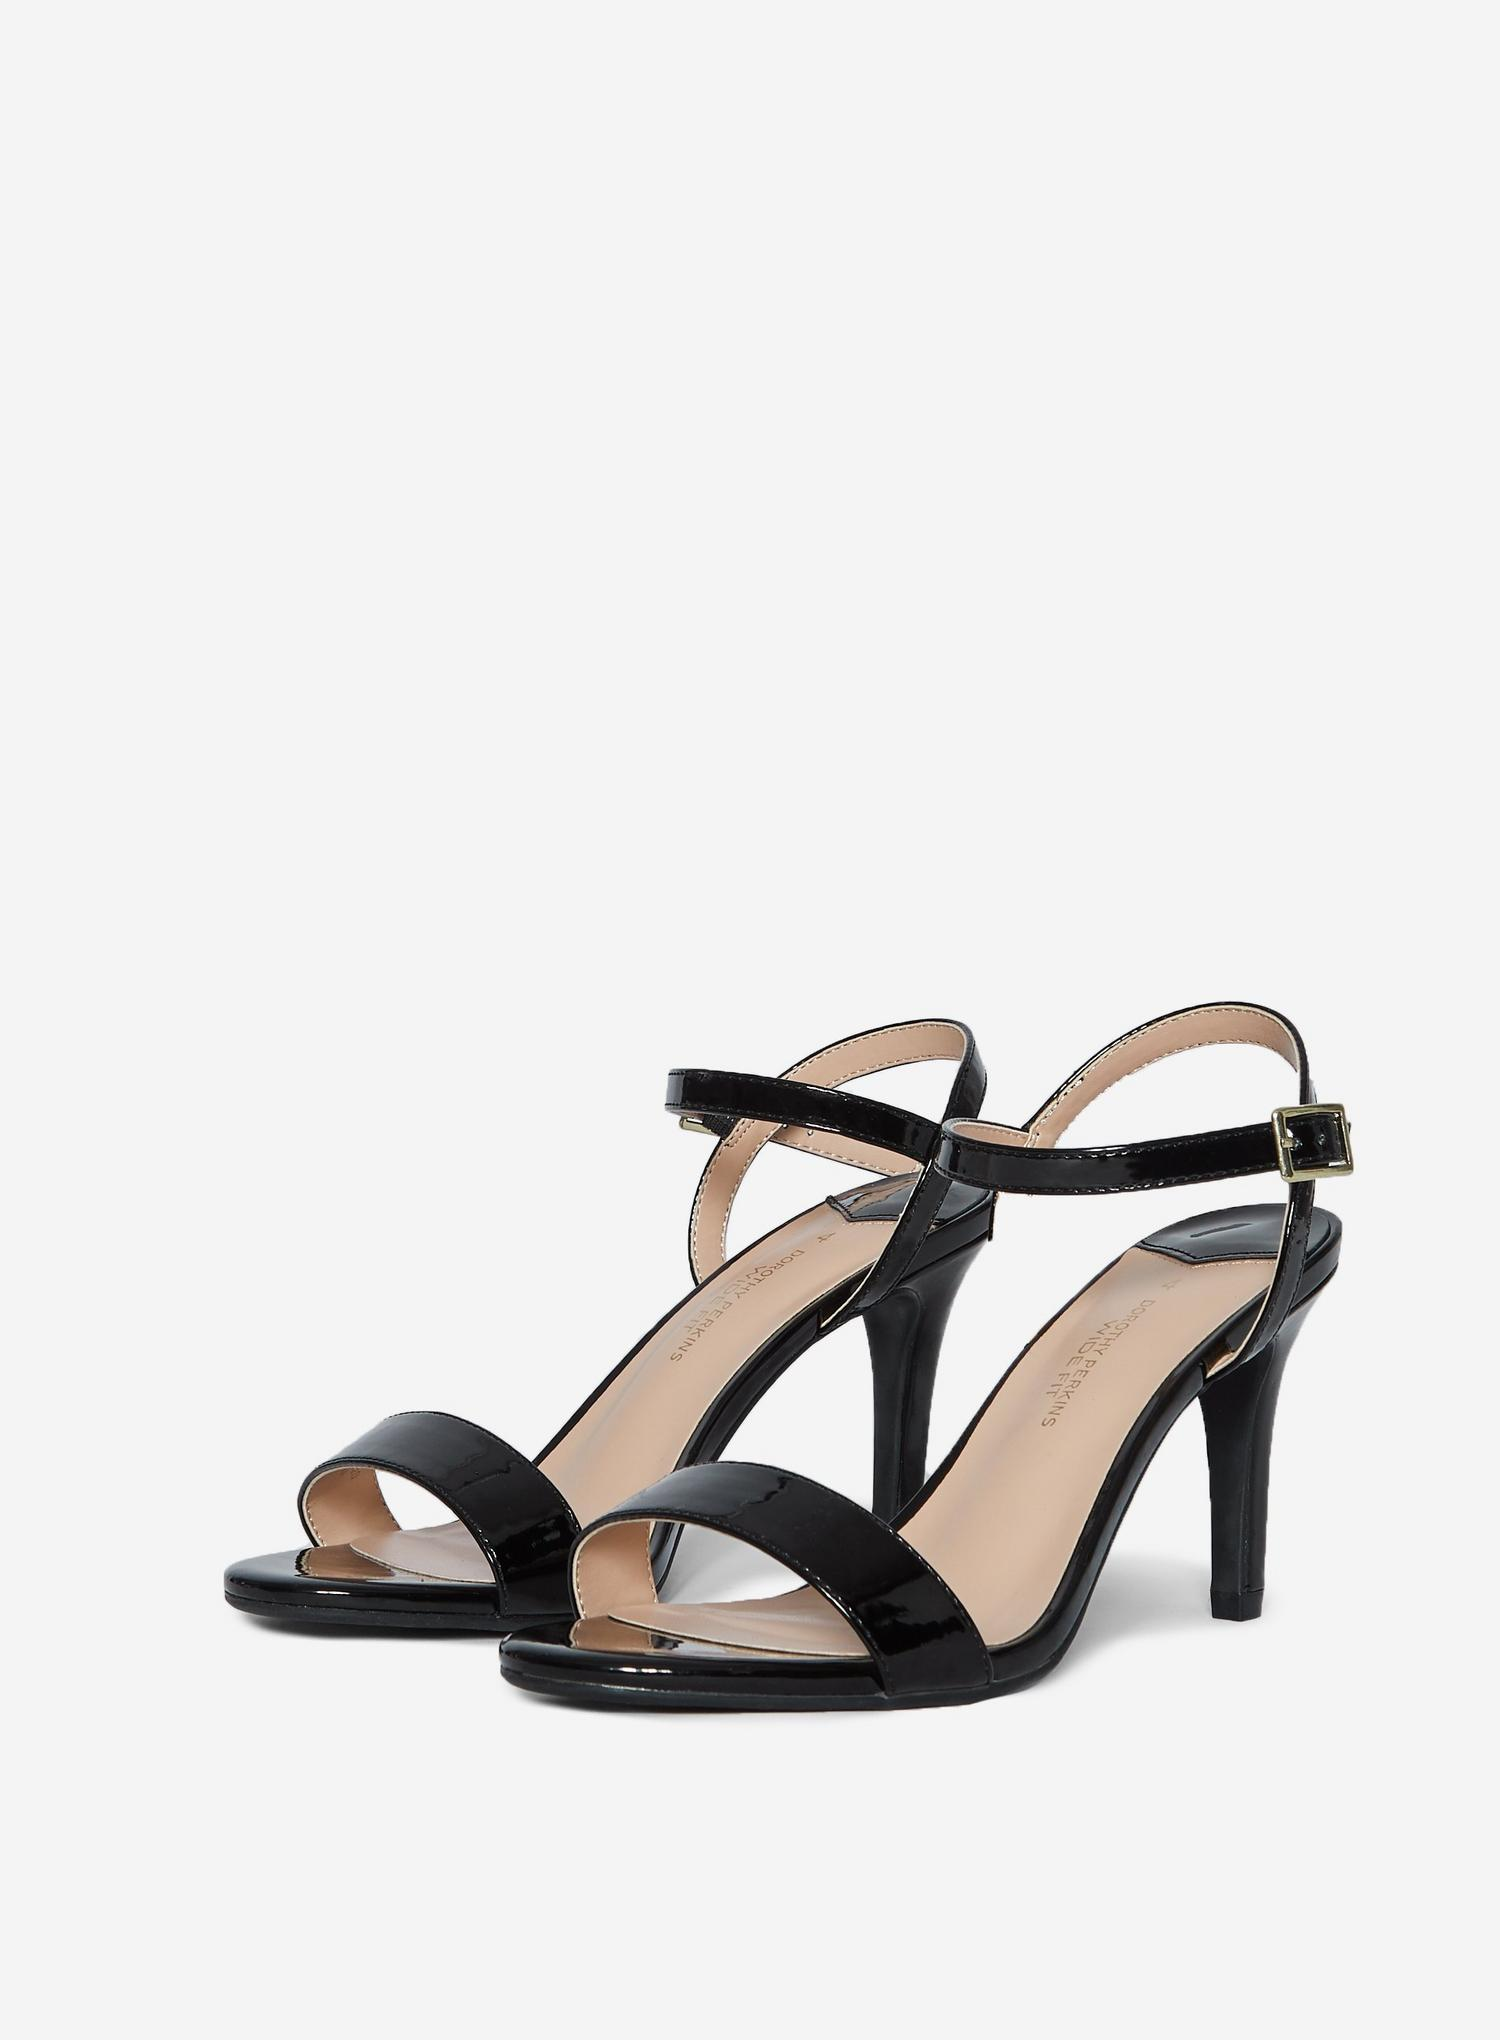 105 Wide Fit Black Patent Sizzle Sandals image number 1